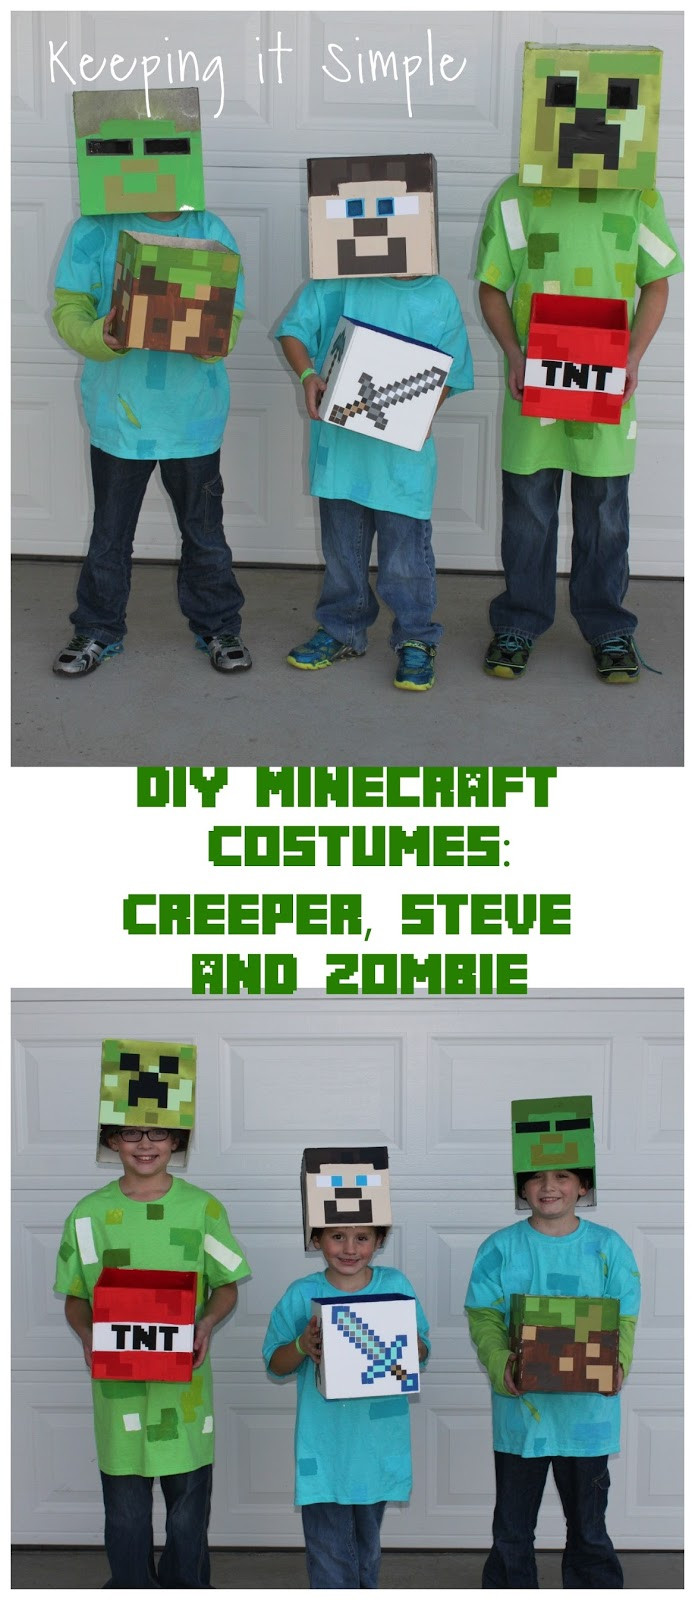 Best ideas about DIY Minecraft Costume . Save or Pin DIY Minecraft Costumes Creeper Steve and Zombie Costume Now.